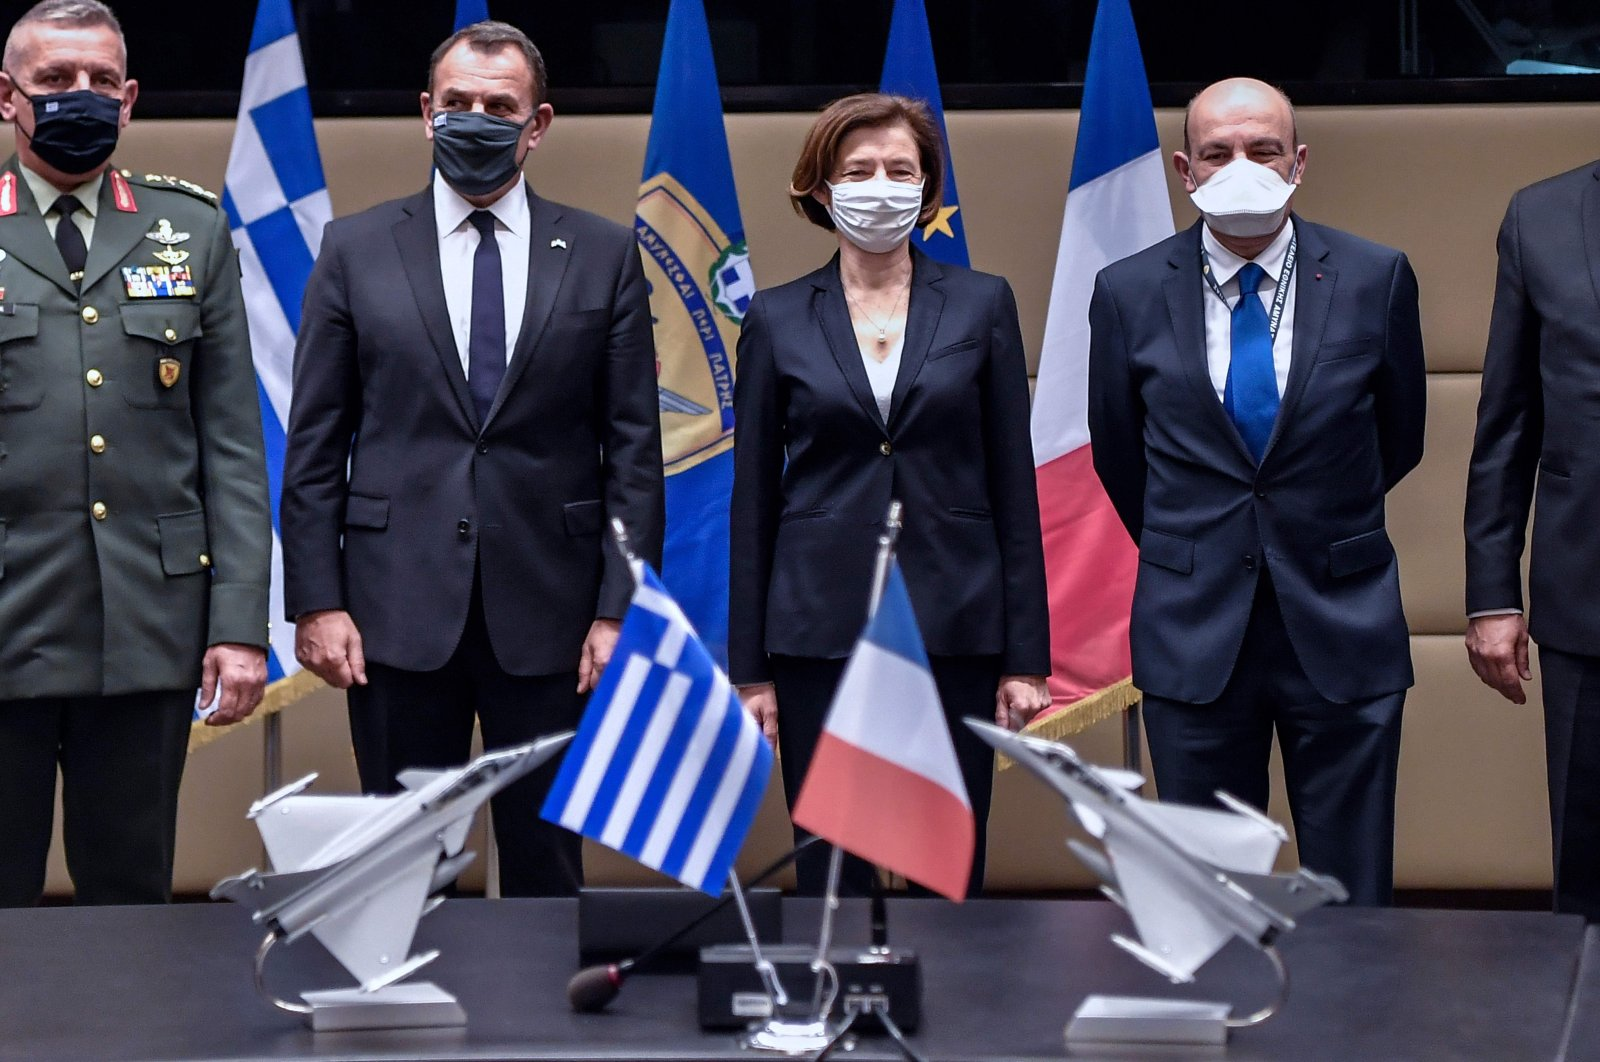 (L-R) Greek Chief of Staff General Konstantinos Floros, Defence Minister Nikolaos Panagiotopoulos, French Defence Minister Florence Parly and GIFAS (French Aerospace Industries Association) Chairperson and Dassault Aviation Chief Executive Eric Trappier pose after the signing of the Rafale warplane deal, Athens, Greece, Jan. 25, 2021. (AFP Photo)